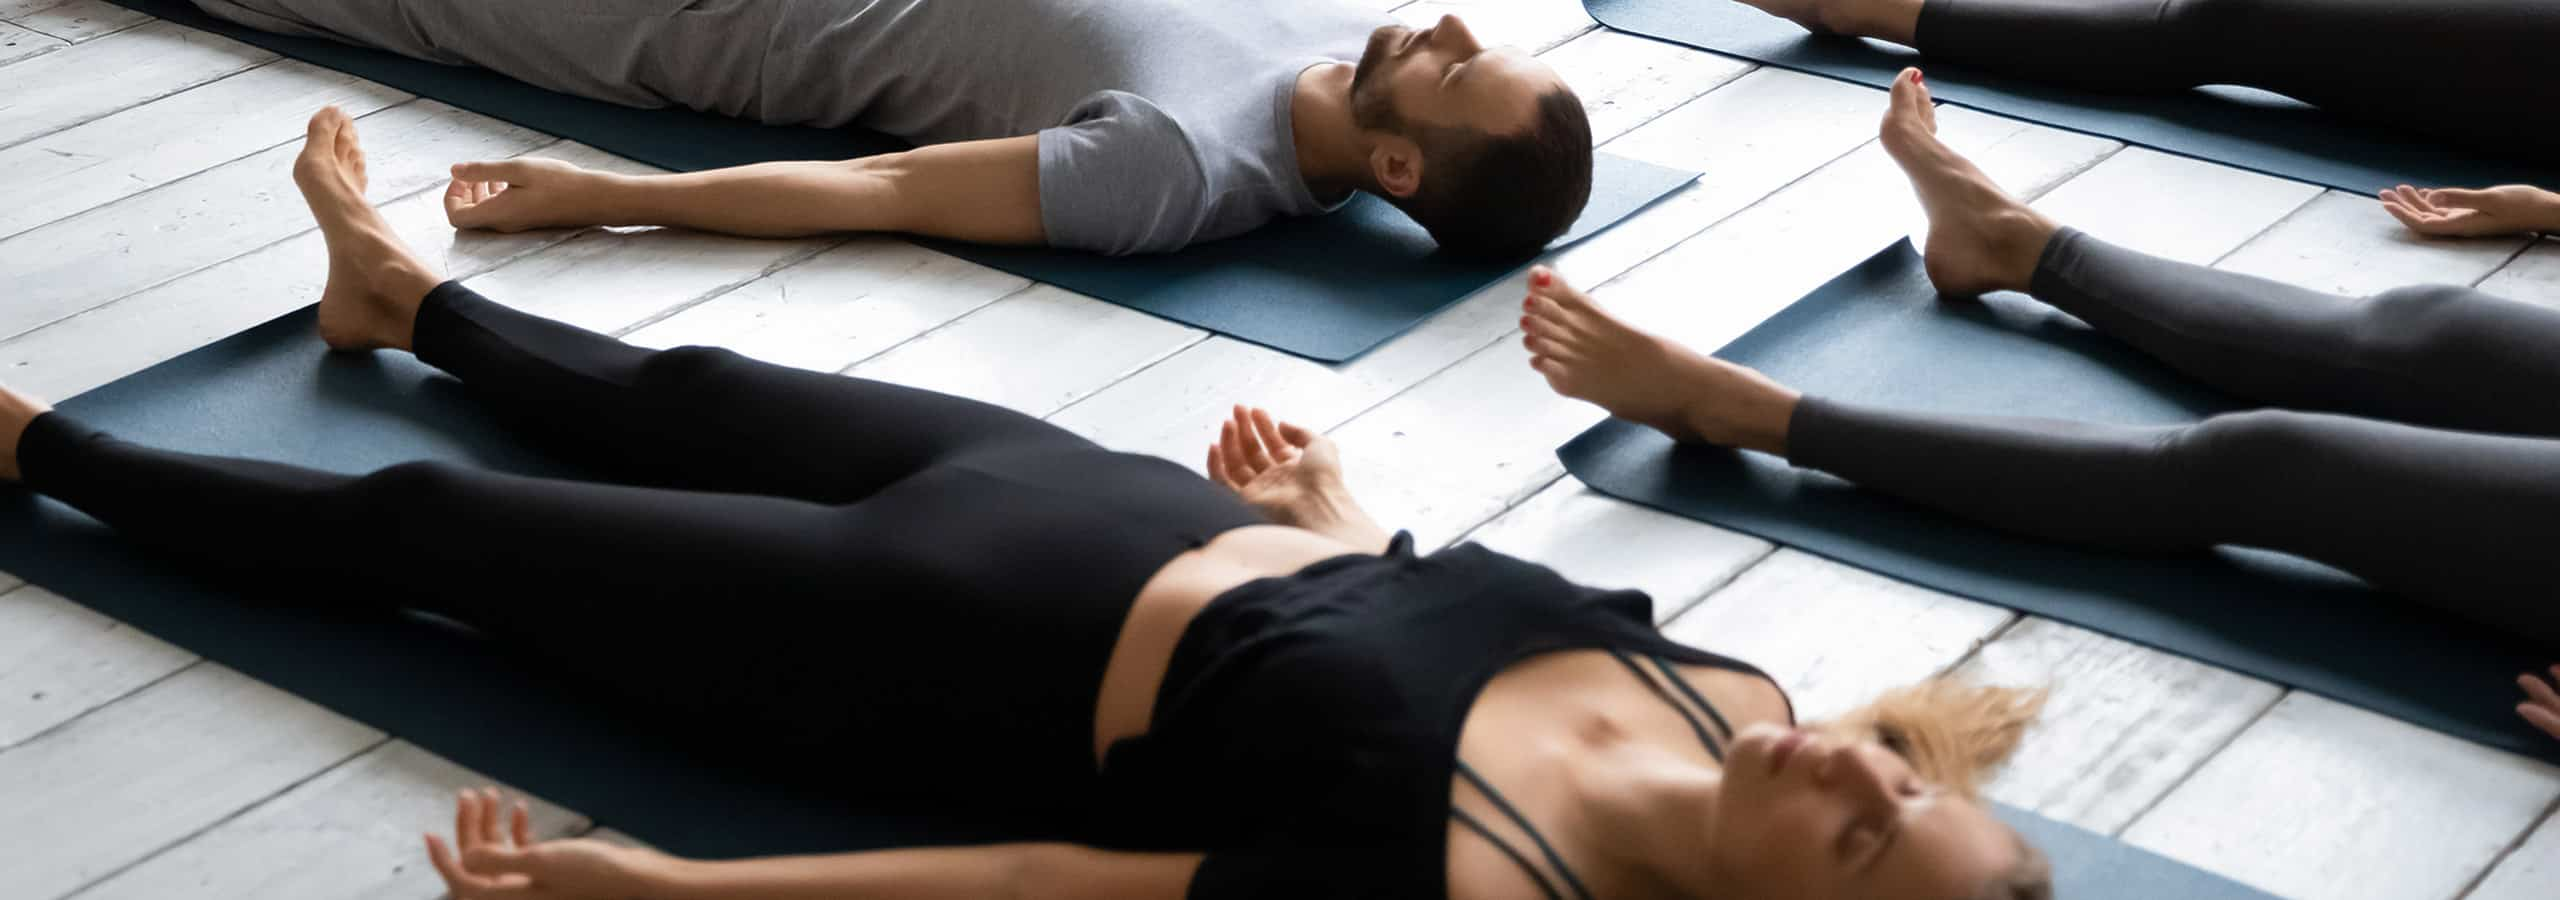 People laying on the ground during a yoga class